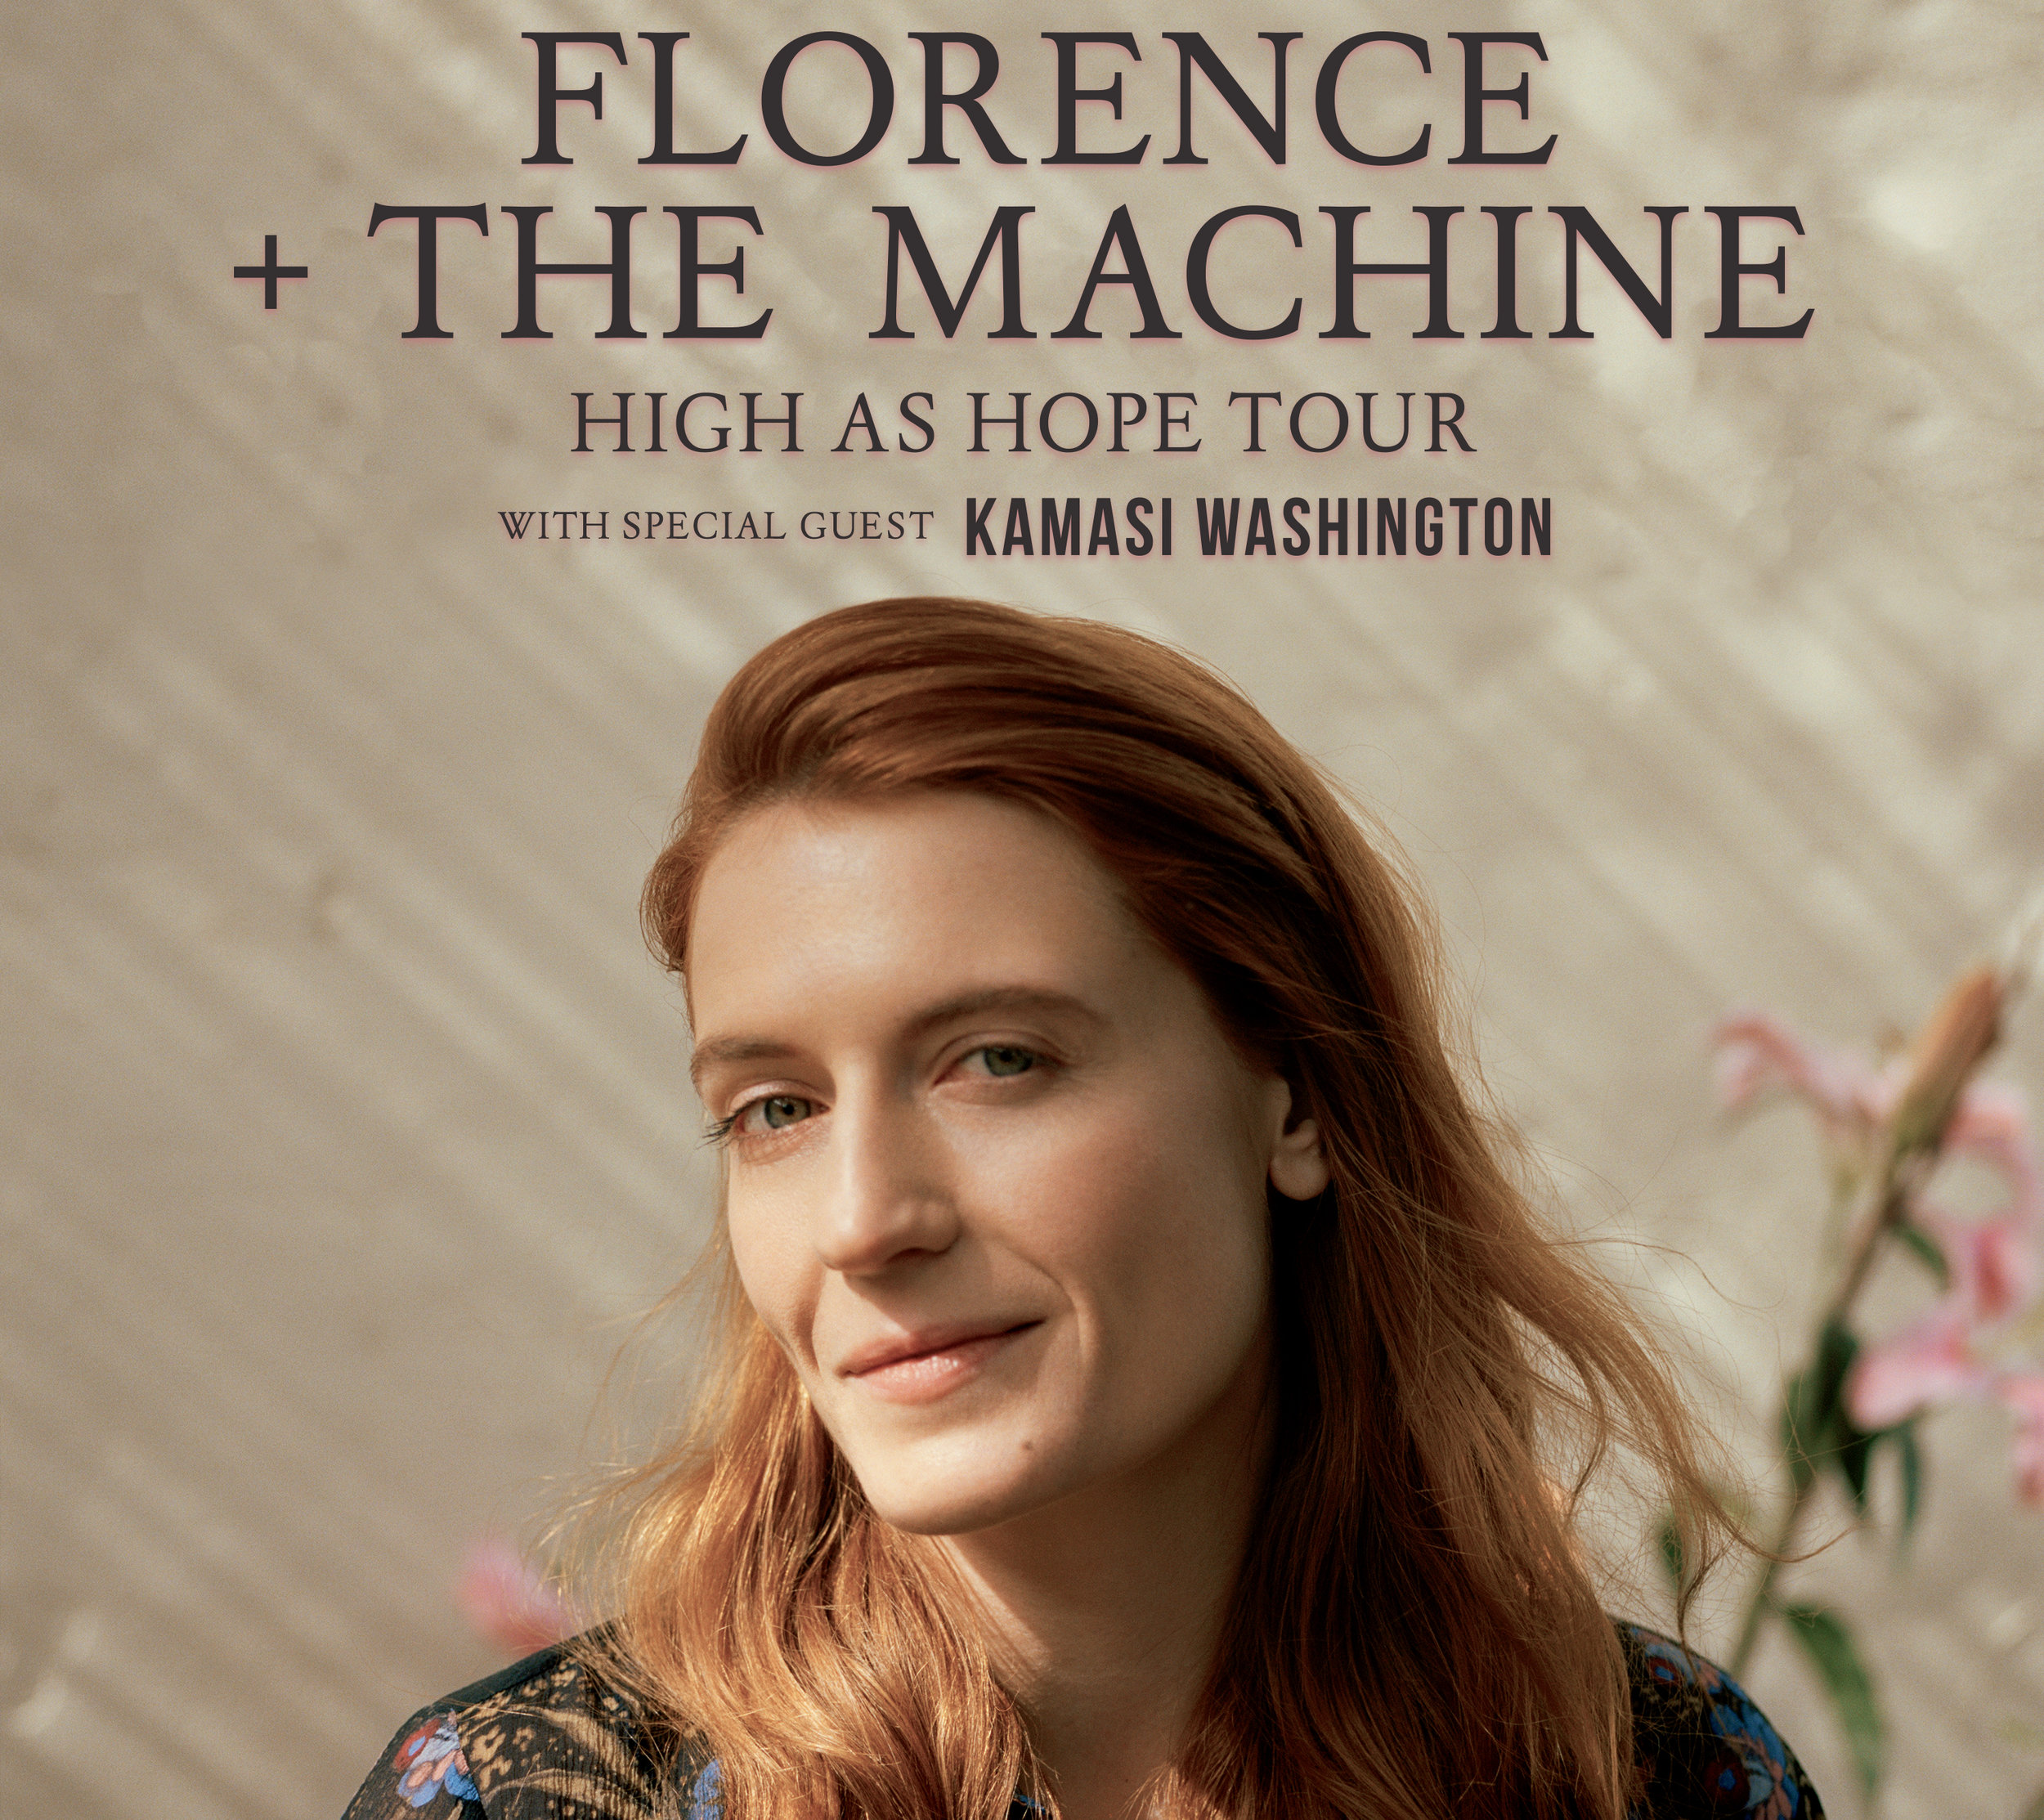 Florence + The Machine - w/ Special Guest: Kamasi WashingtonWednesday, September 26thDoors 5:30pm | Show 7:00pm